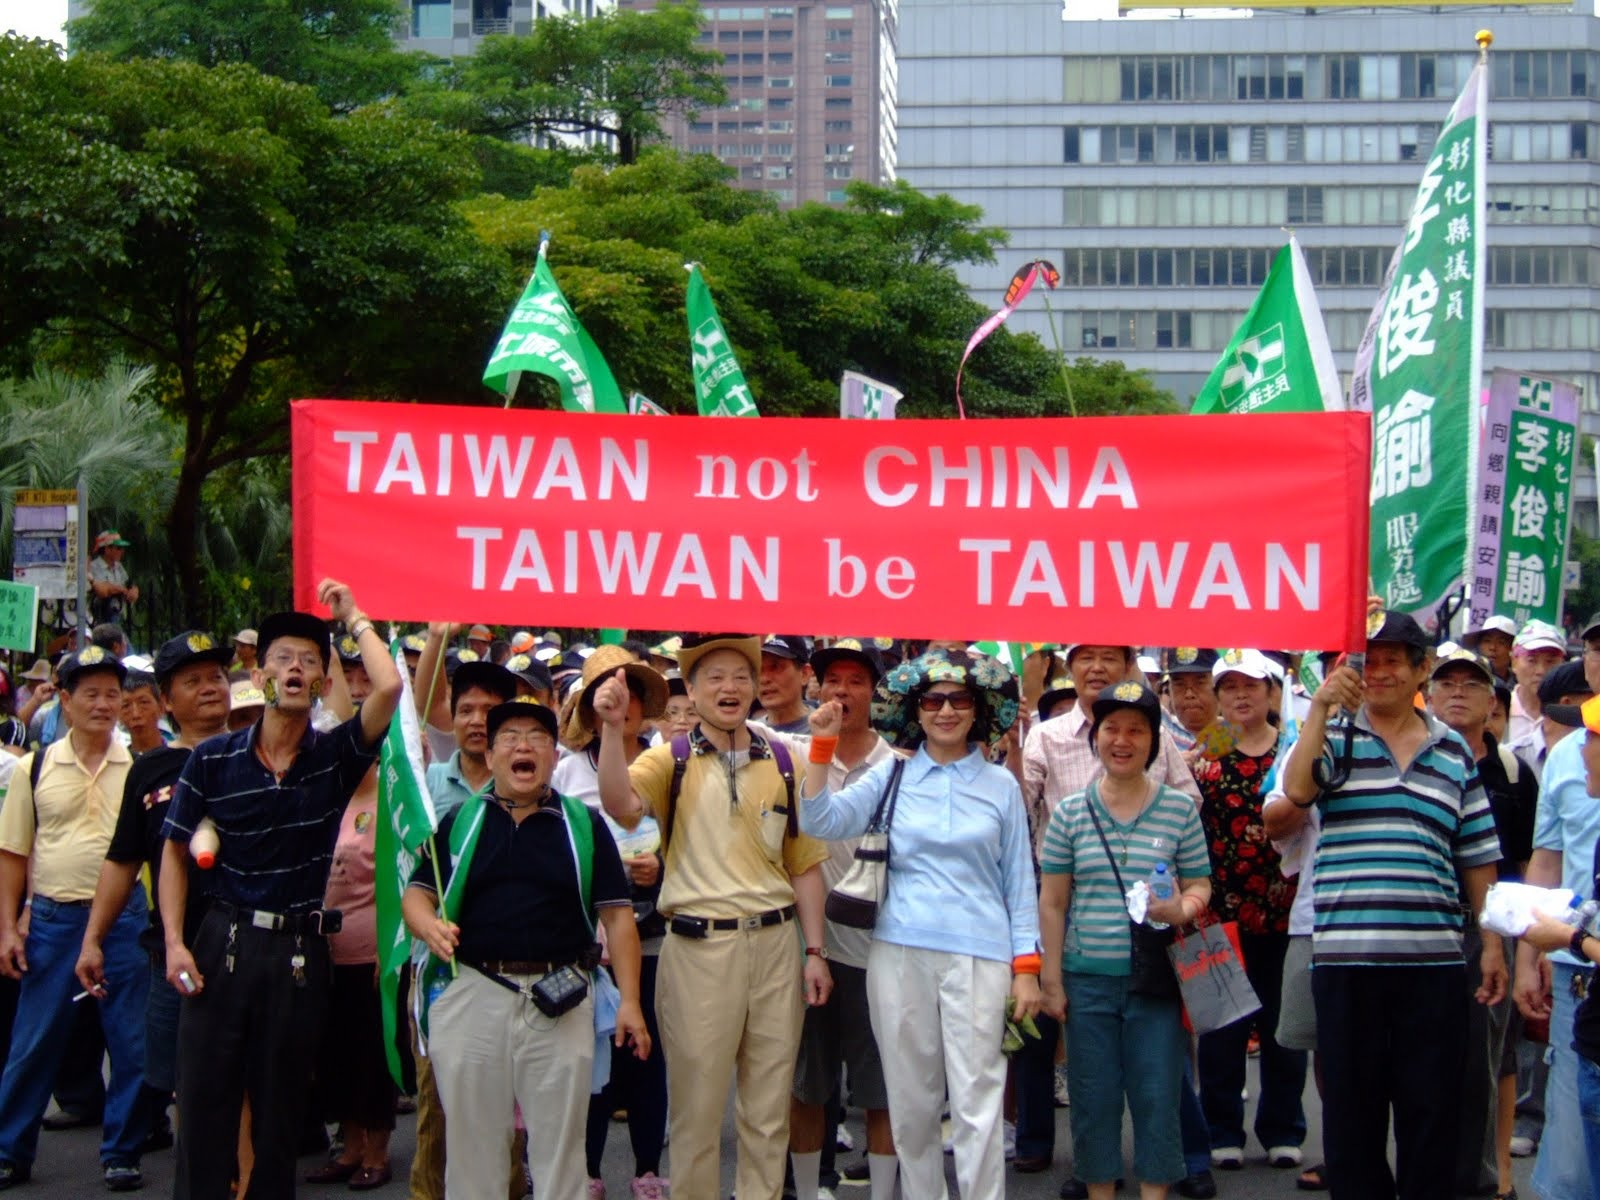 Republic Taiwan independence, Taiwan is not part of china, Taiwan be Taiwan